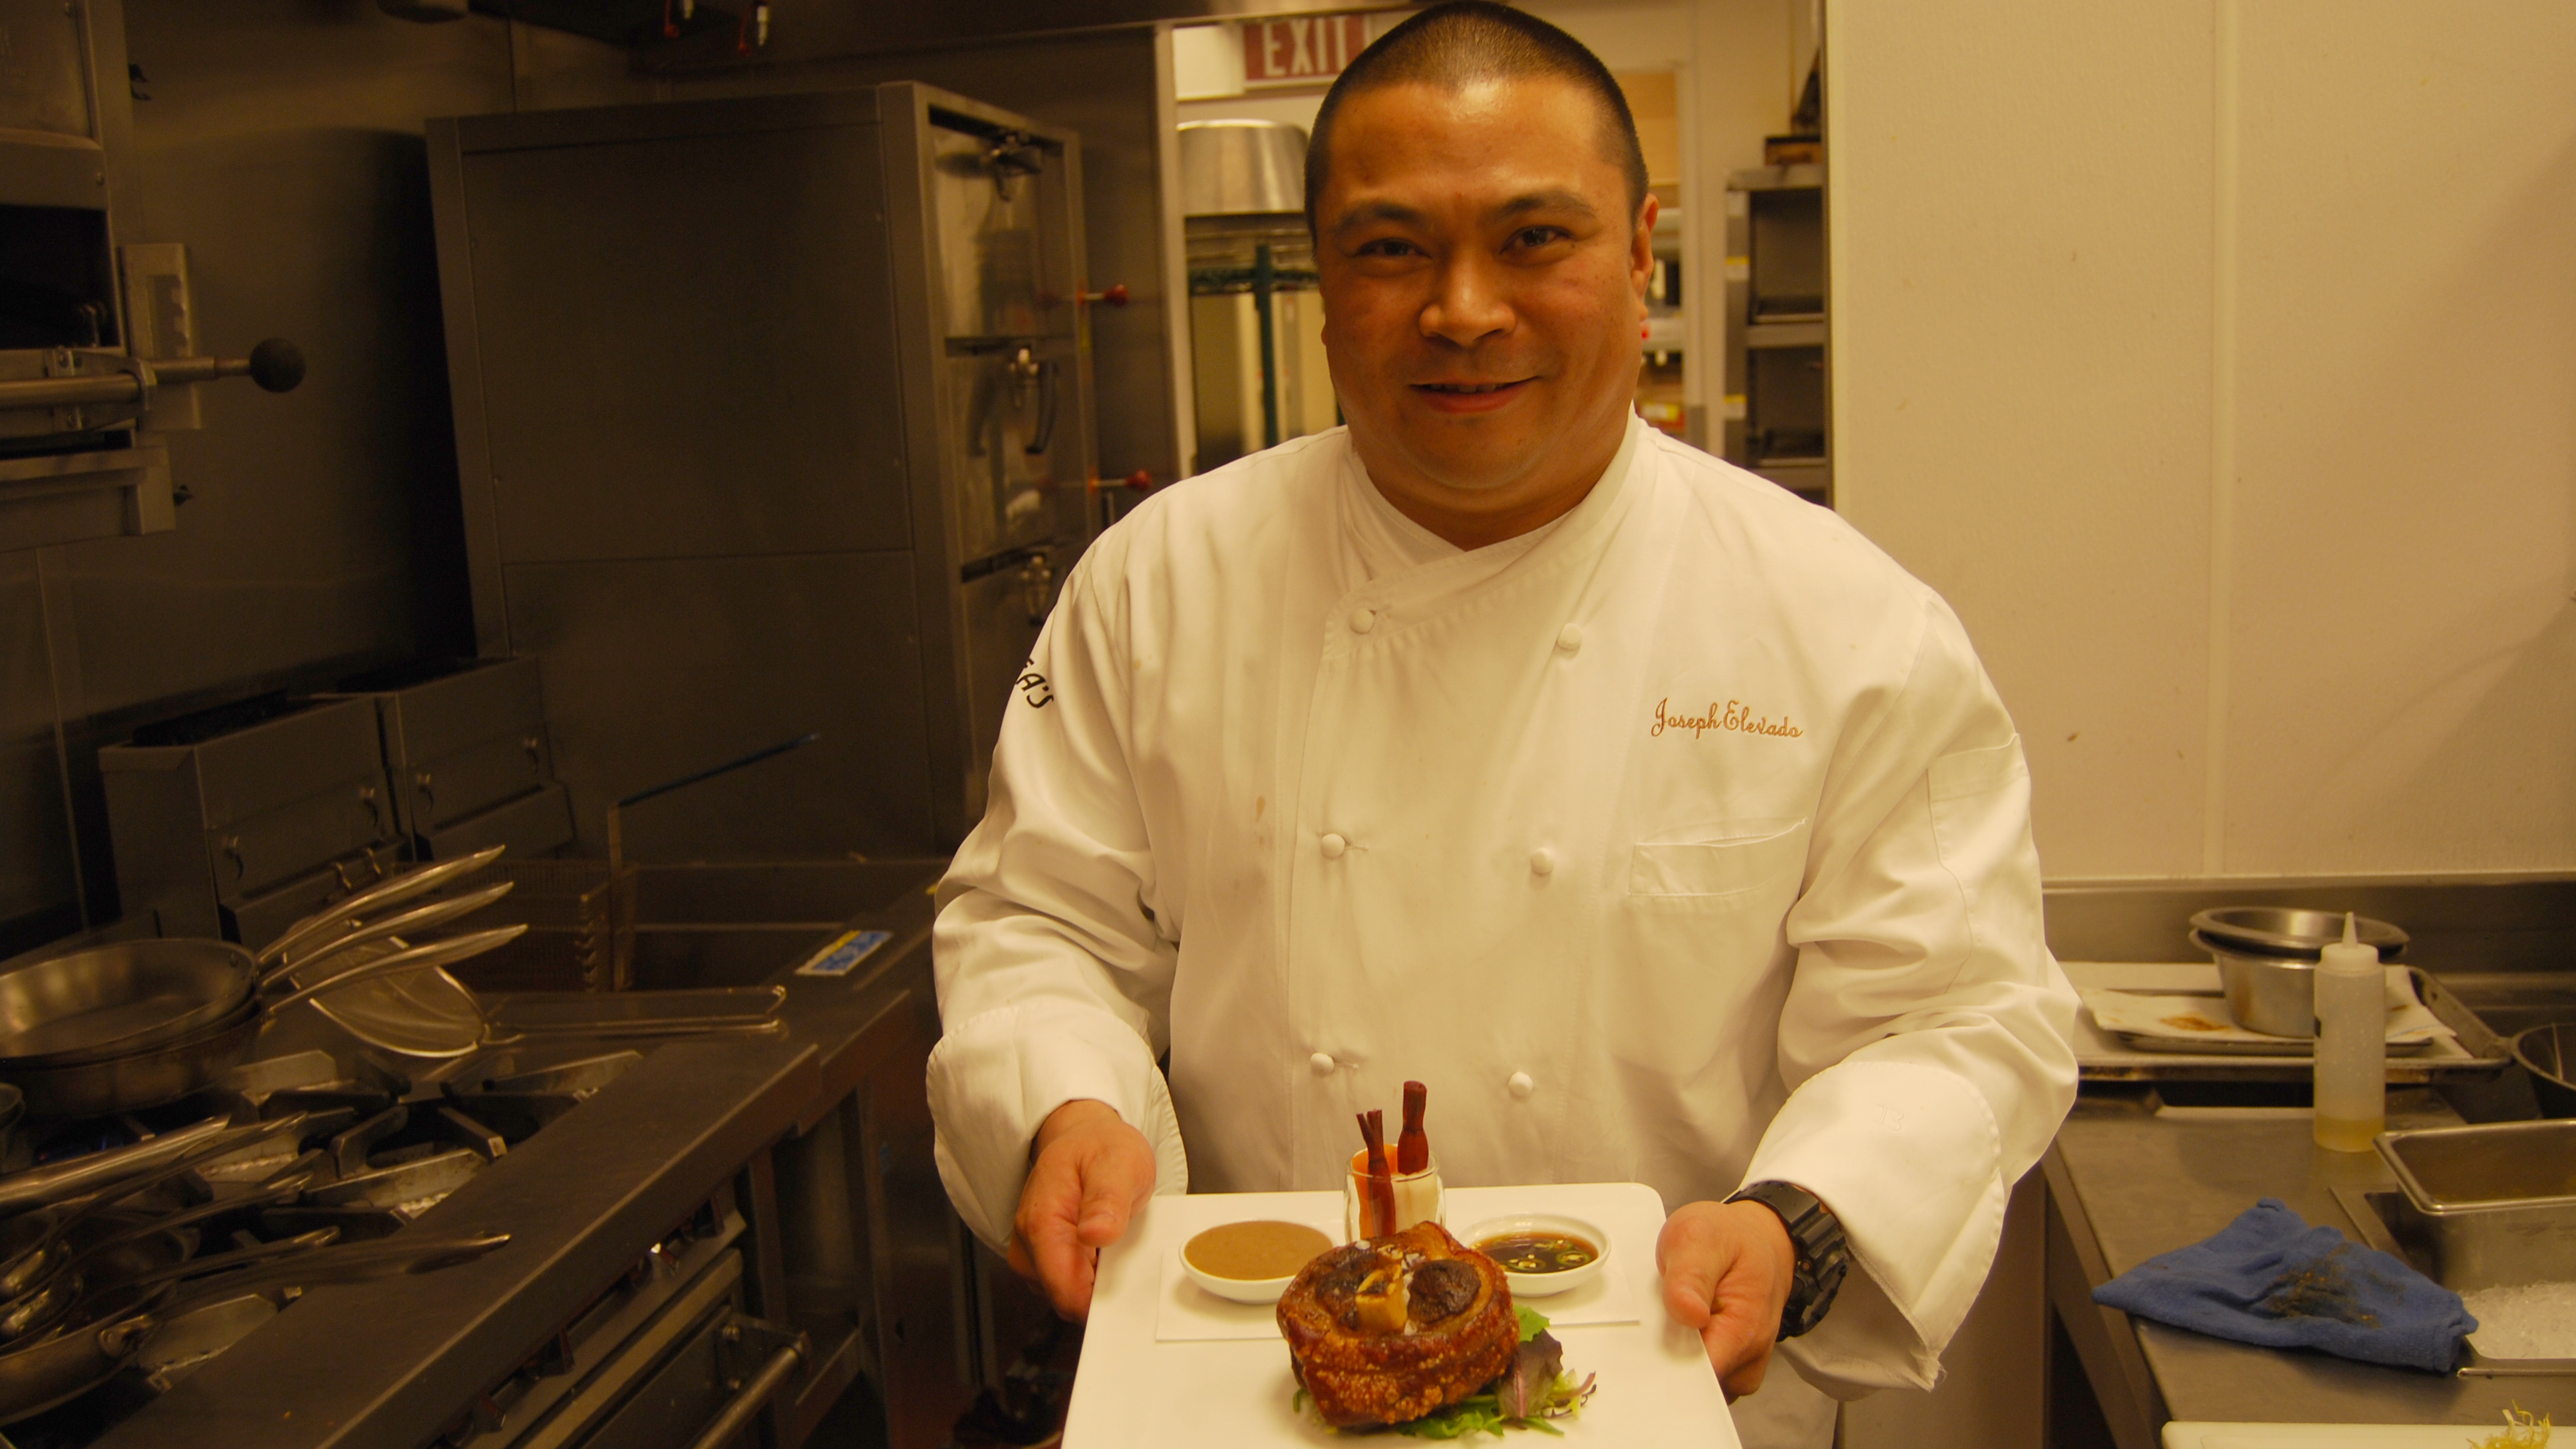 Joseph Elevado, head chef at Andrea's, holds a plate of crispy pork shank known as pata, a dish served Filipino style. His menu offers a variety of Asian dishes including Chinese, Japanese, Thai and Filipino foods.